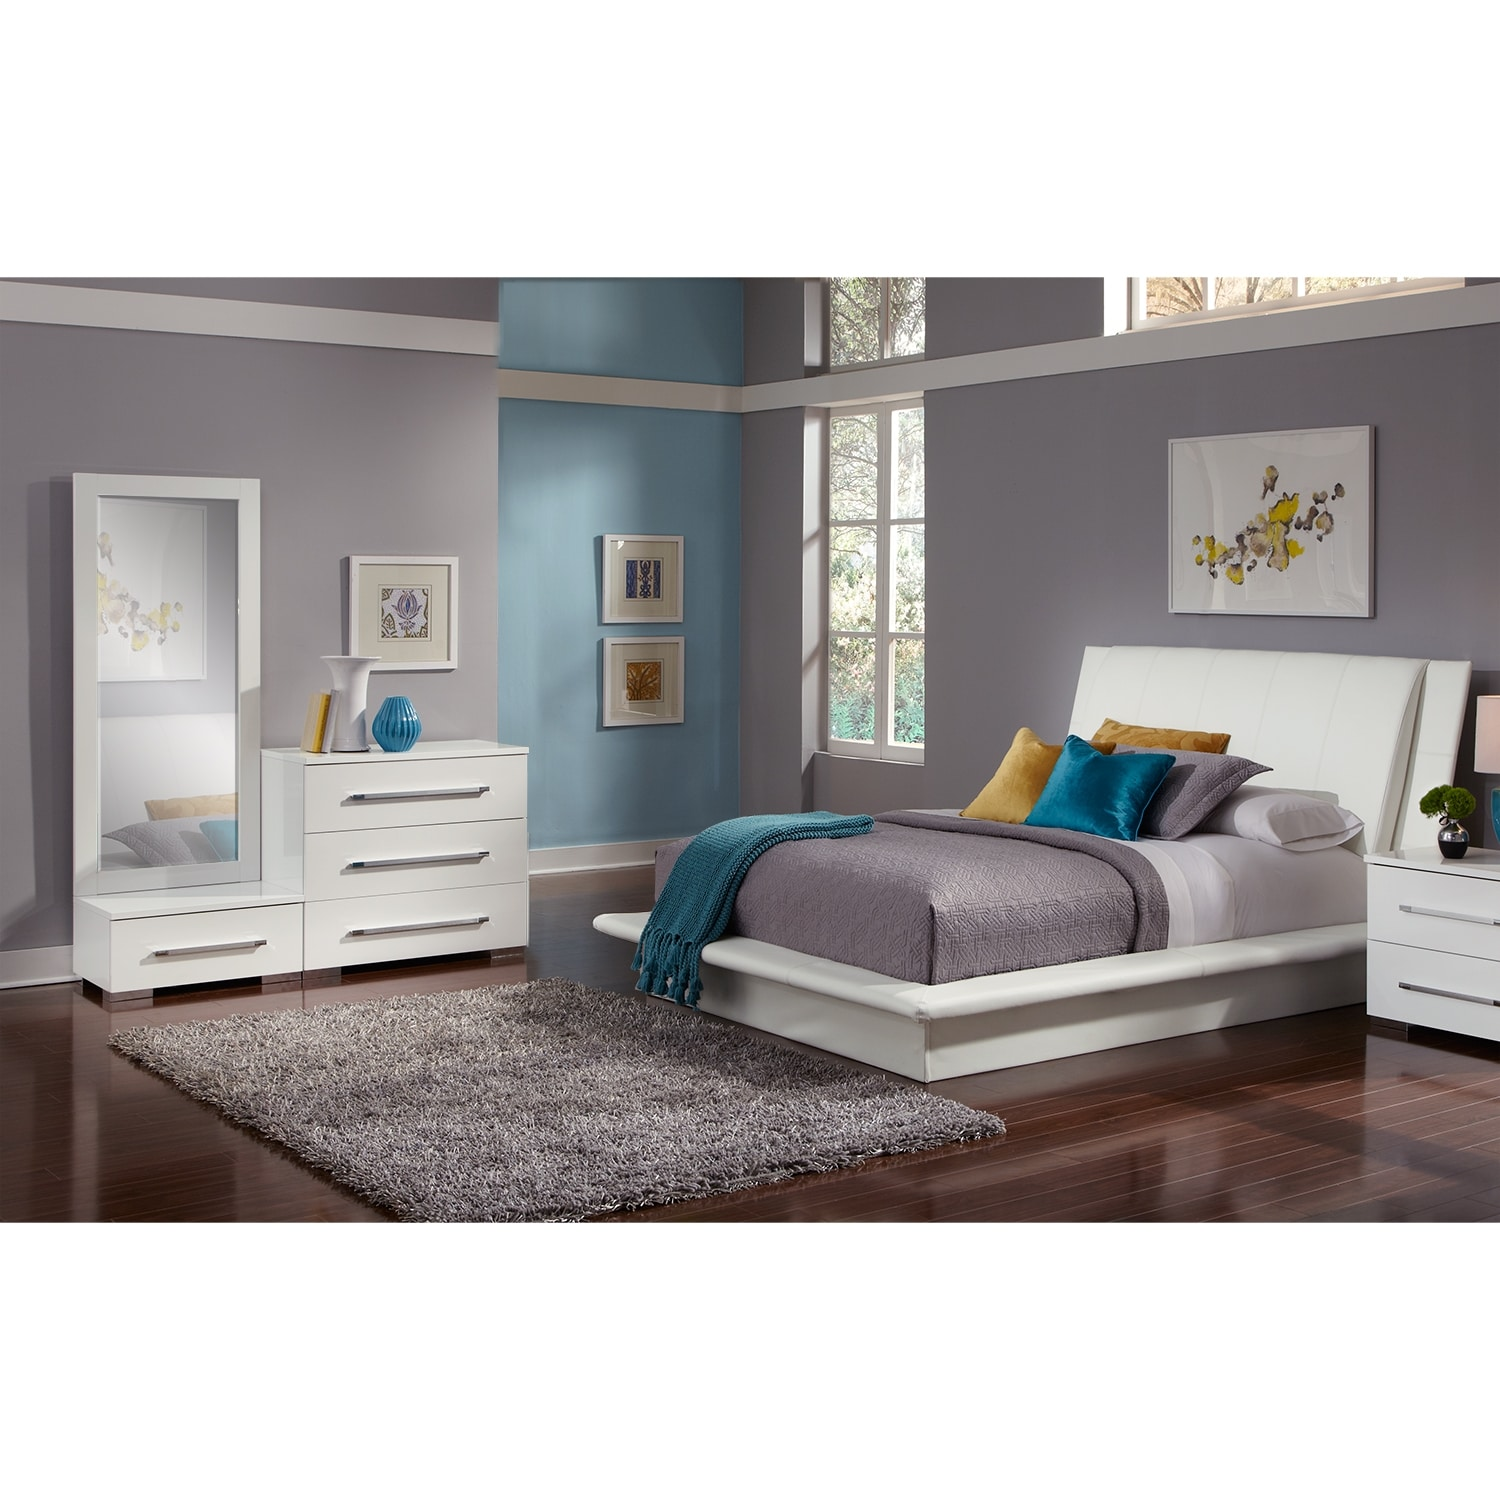 Dimora 5 Piece Queen Upholstered Bedroom Set White Value City Furniture